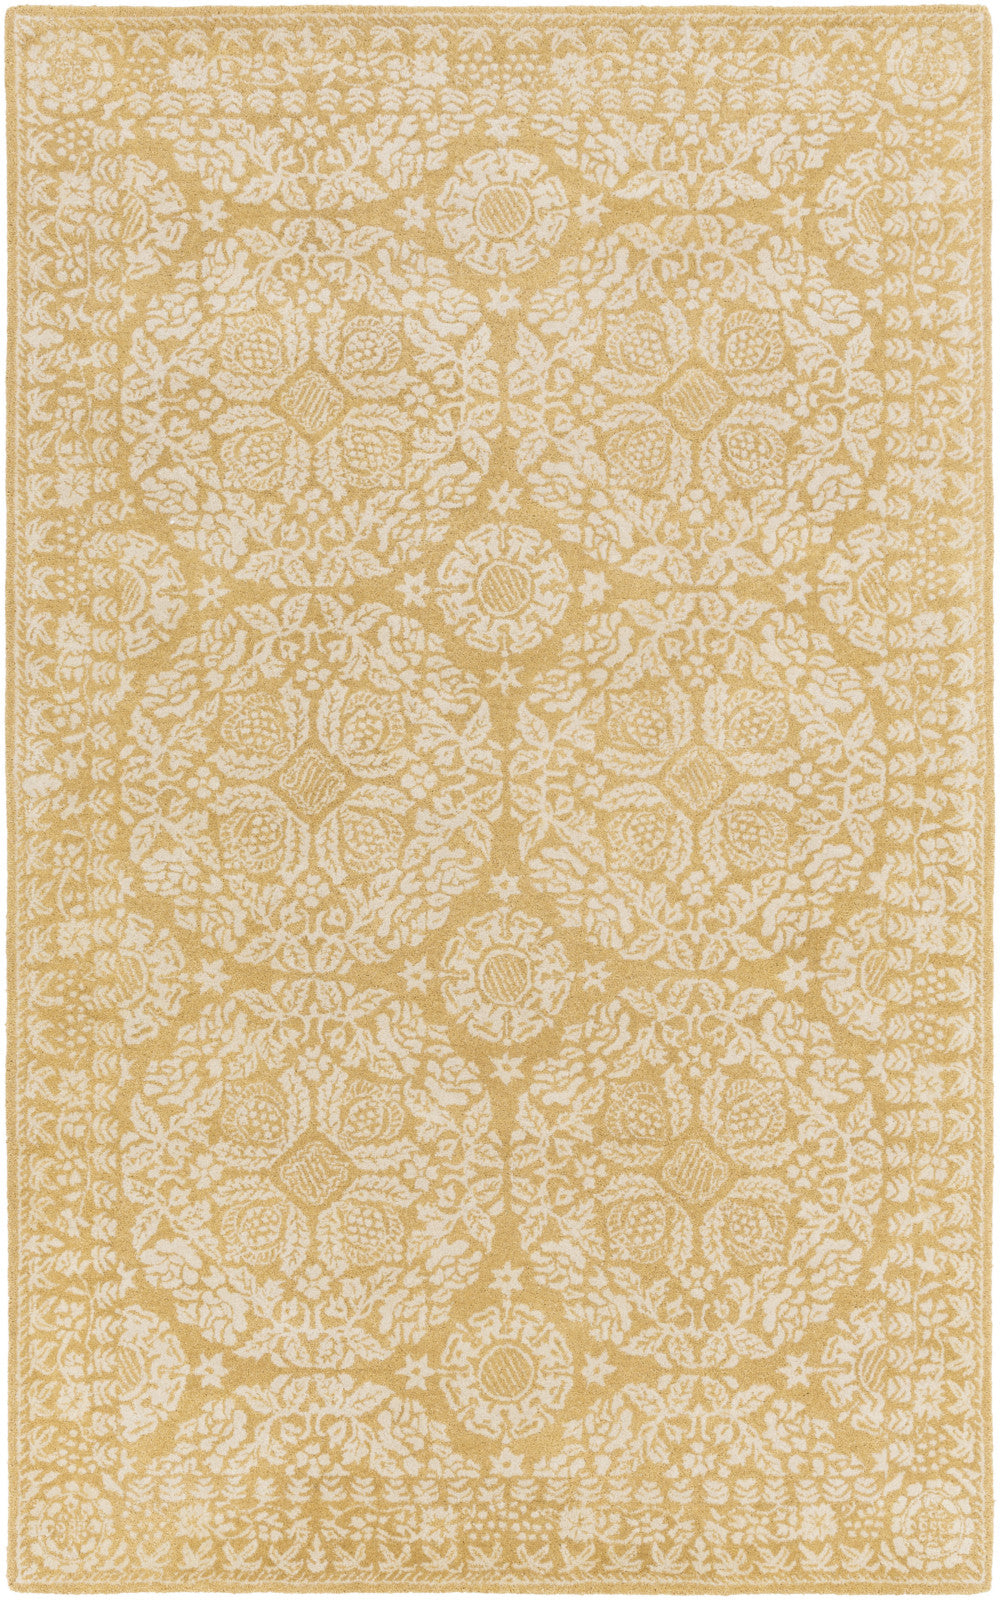 Surya SMI-2150 Yellow Area Rug by Smithsonian